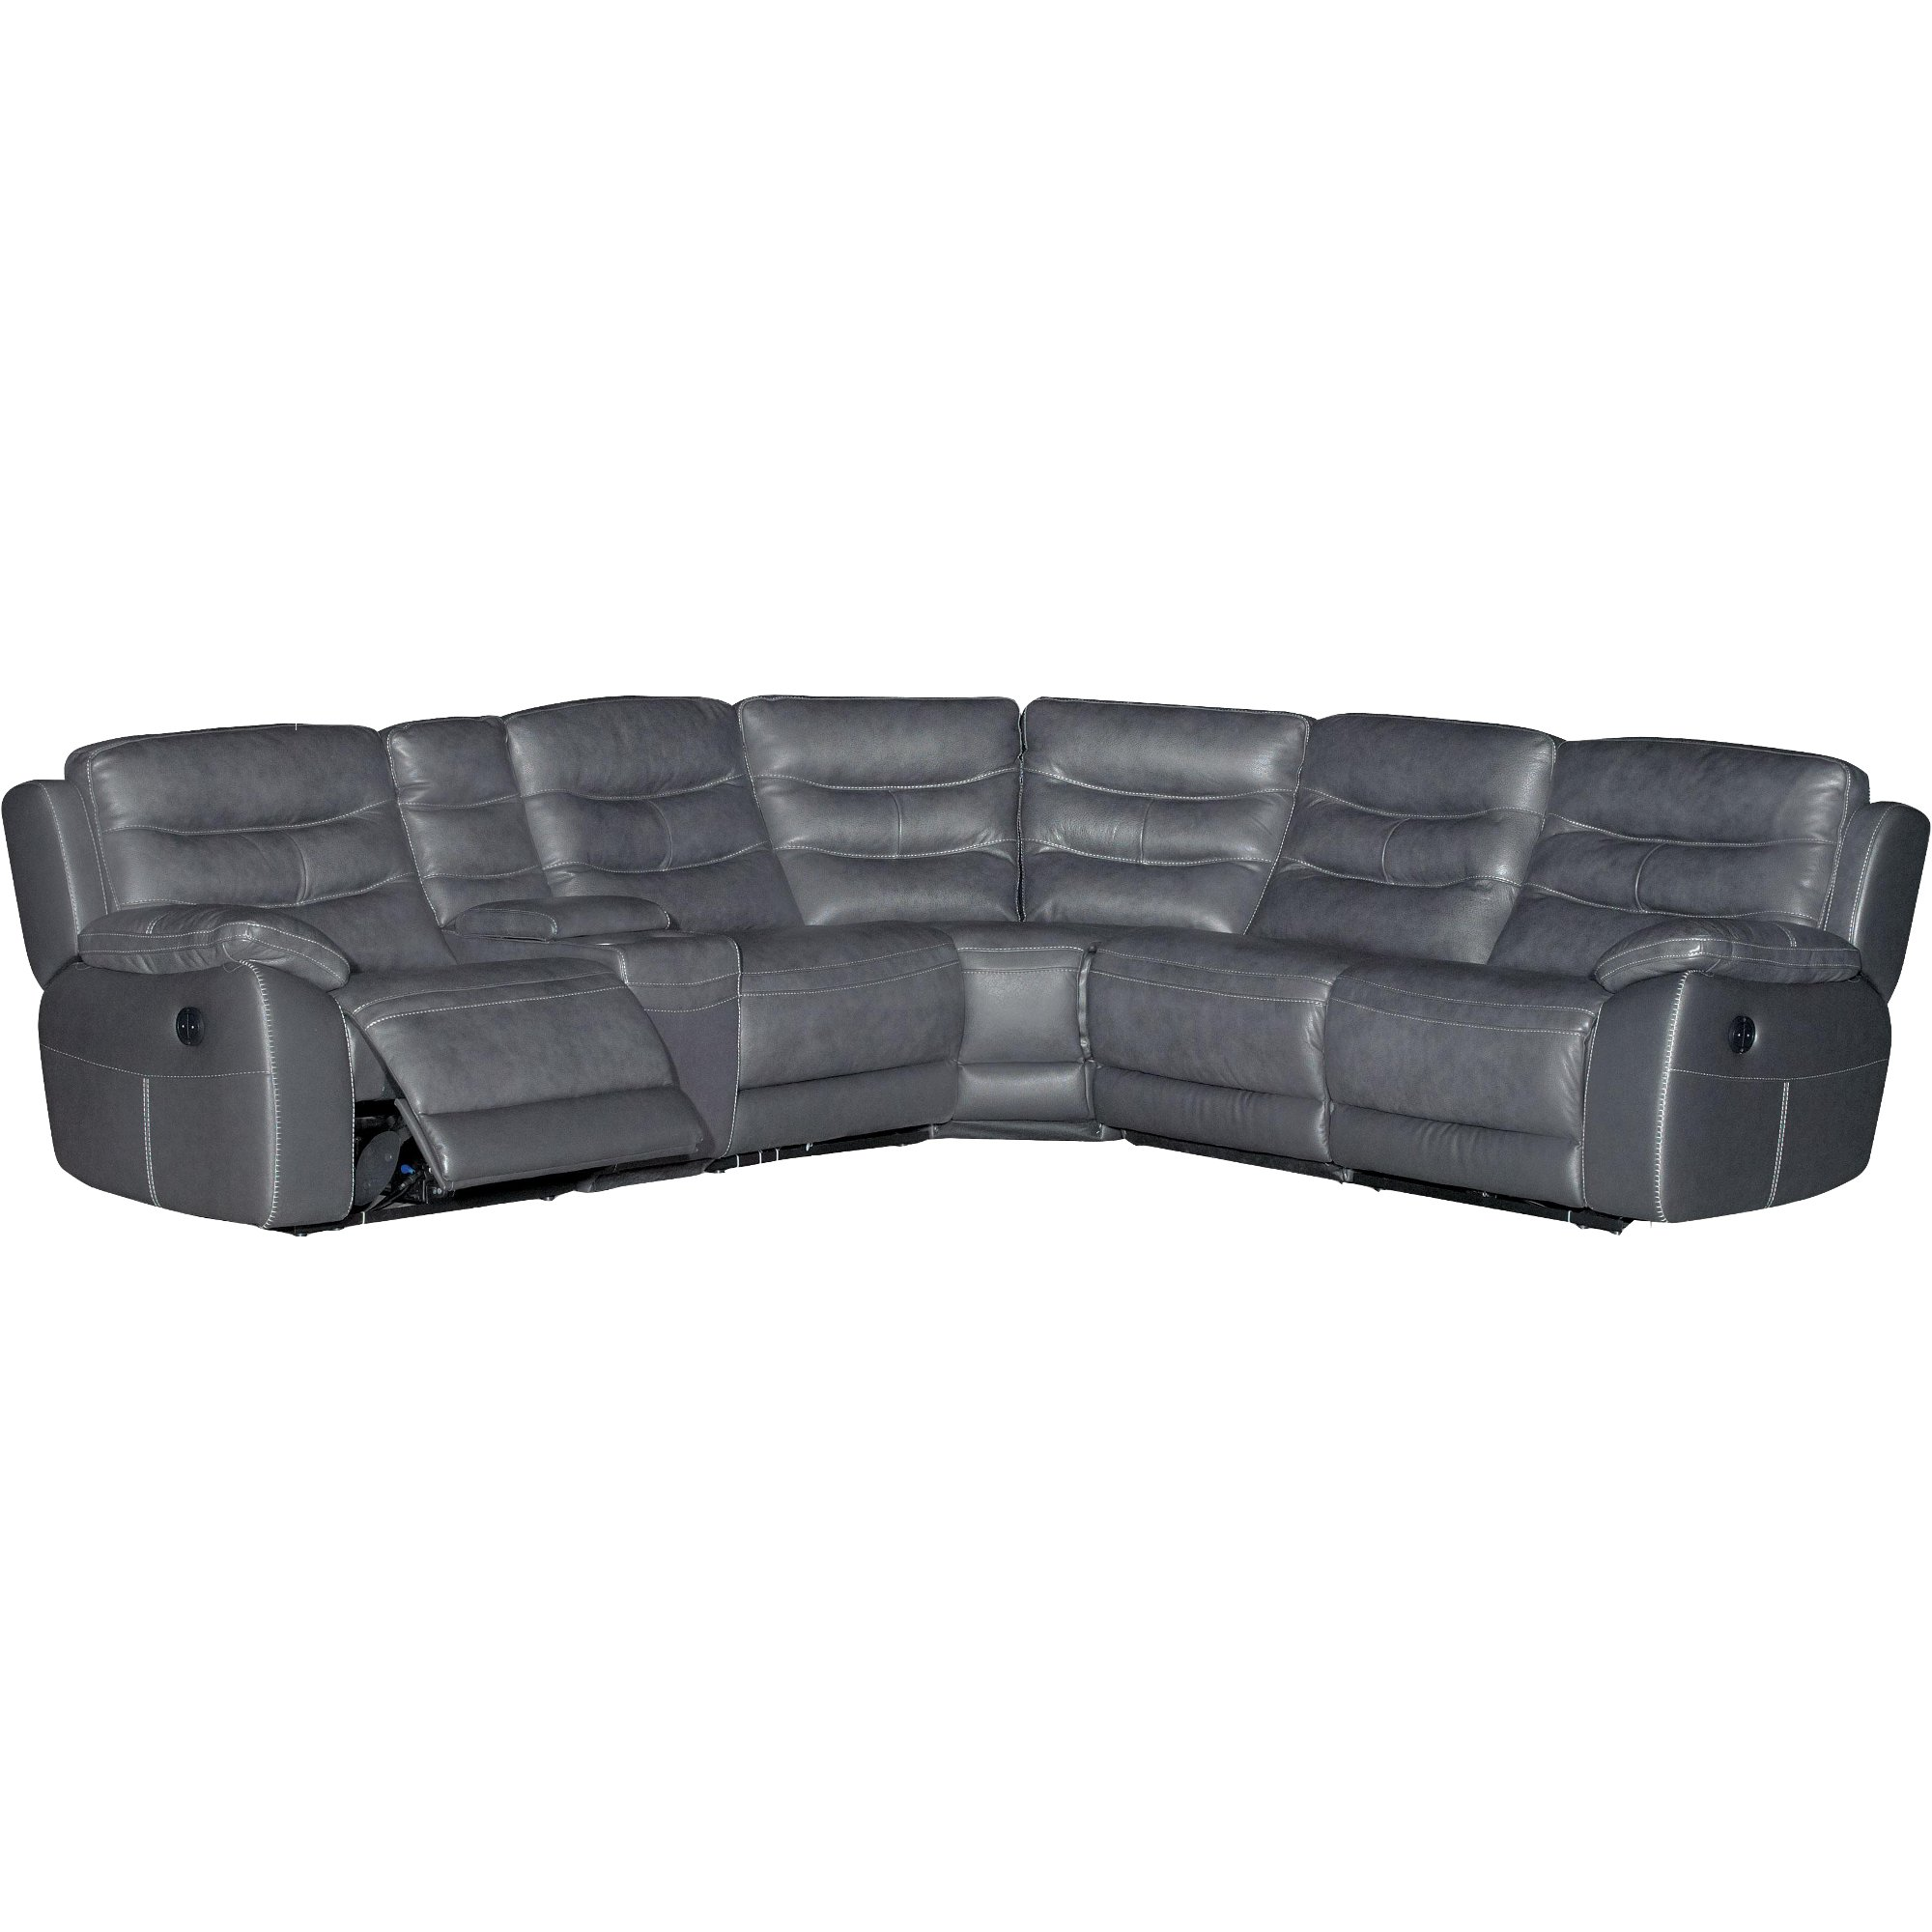 Sofa Express Locations Shop Leather Sectionals Furniture Store Rc Willey